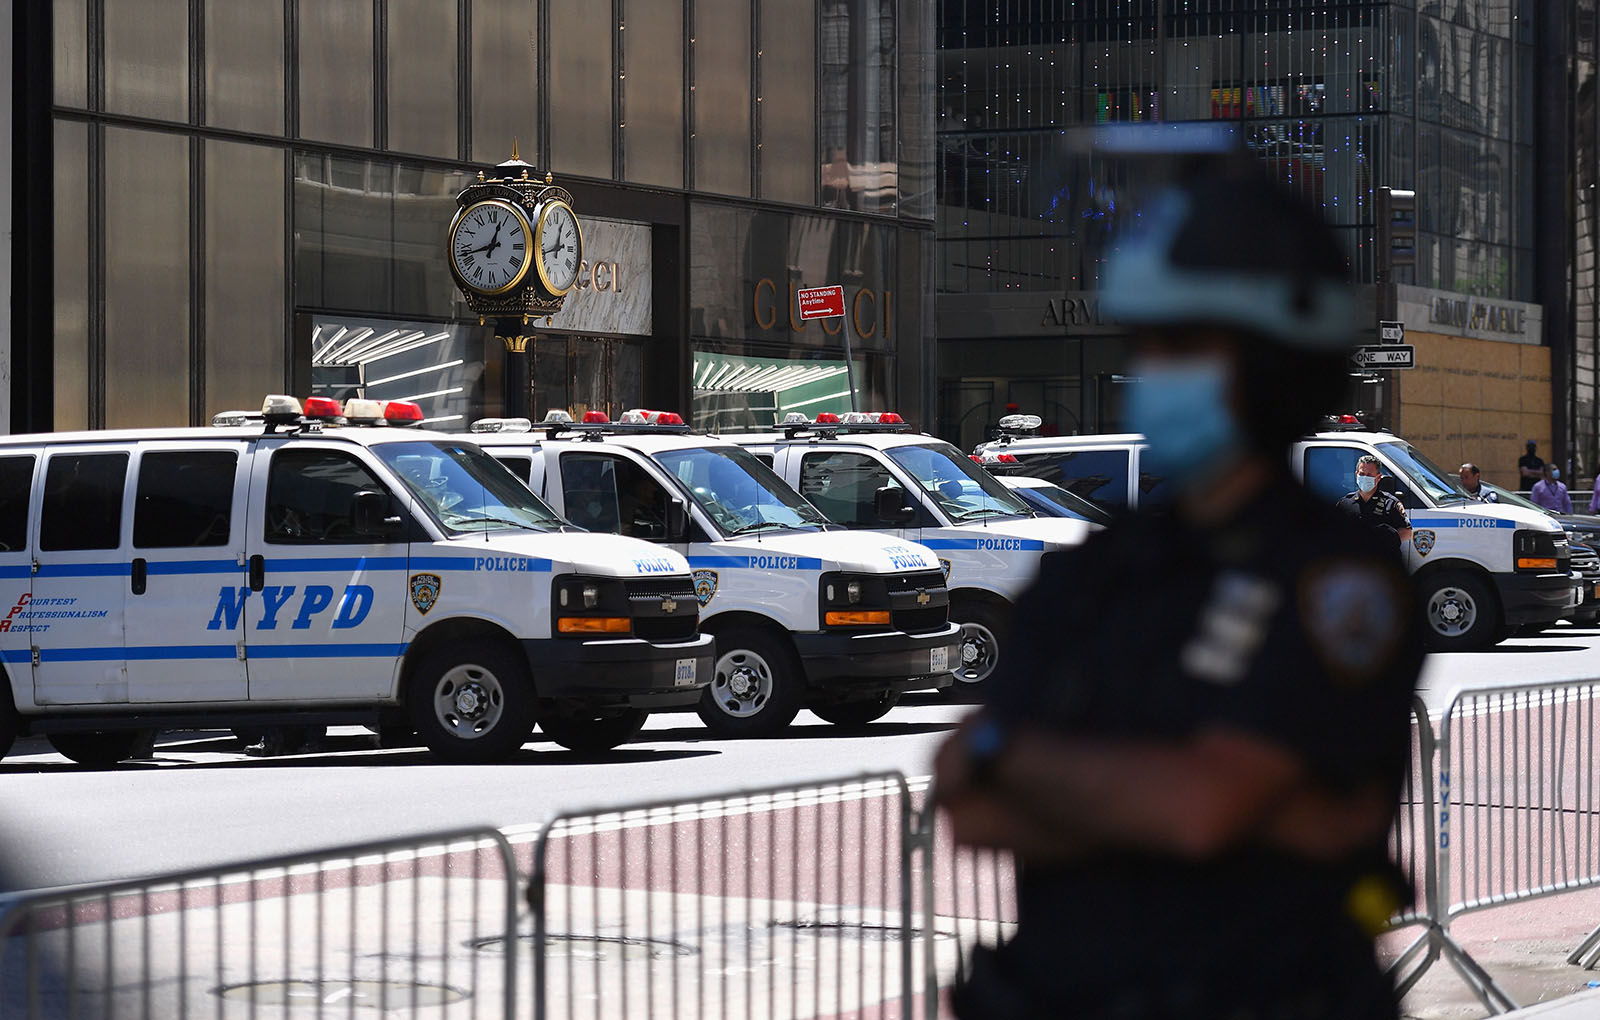 A police officer stands guard on 5th Avenue on June 12, in New York City.